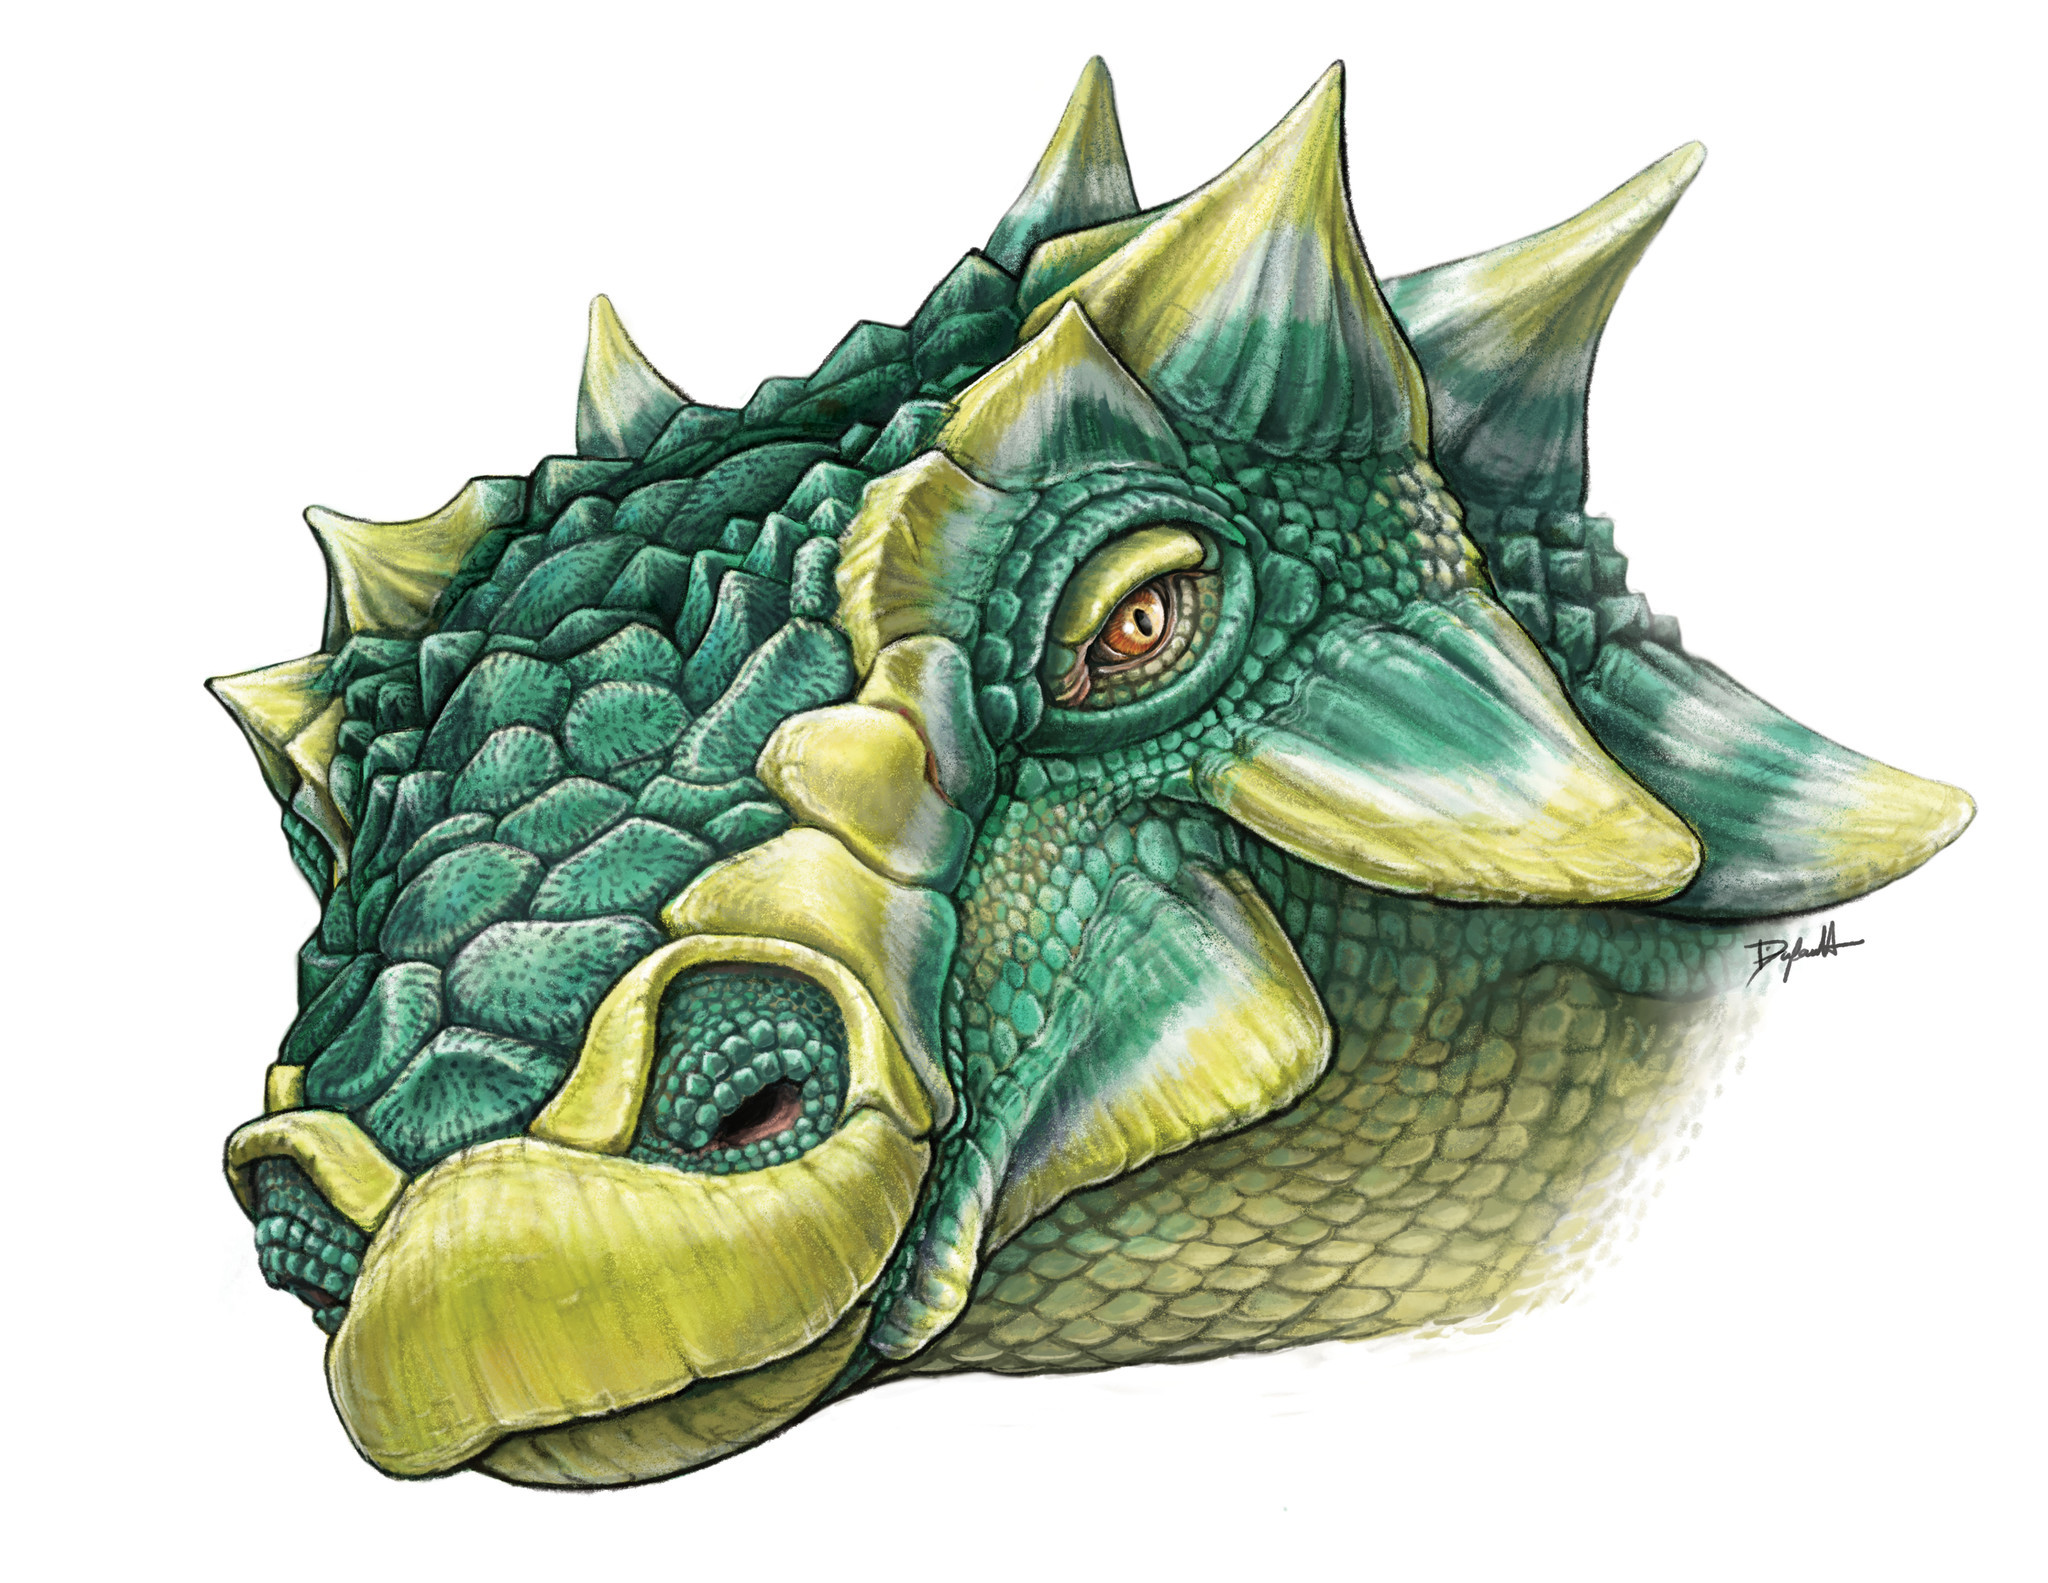 An artist's depiction of Zuul crurivastator.